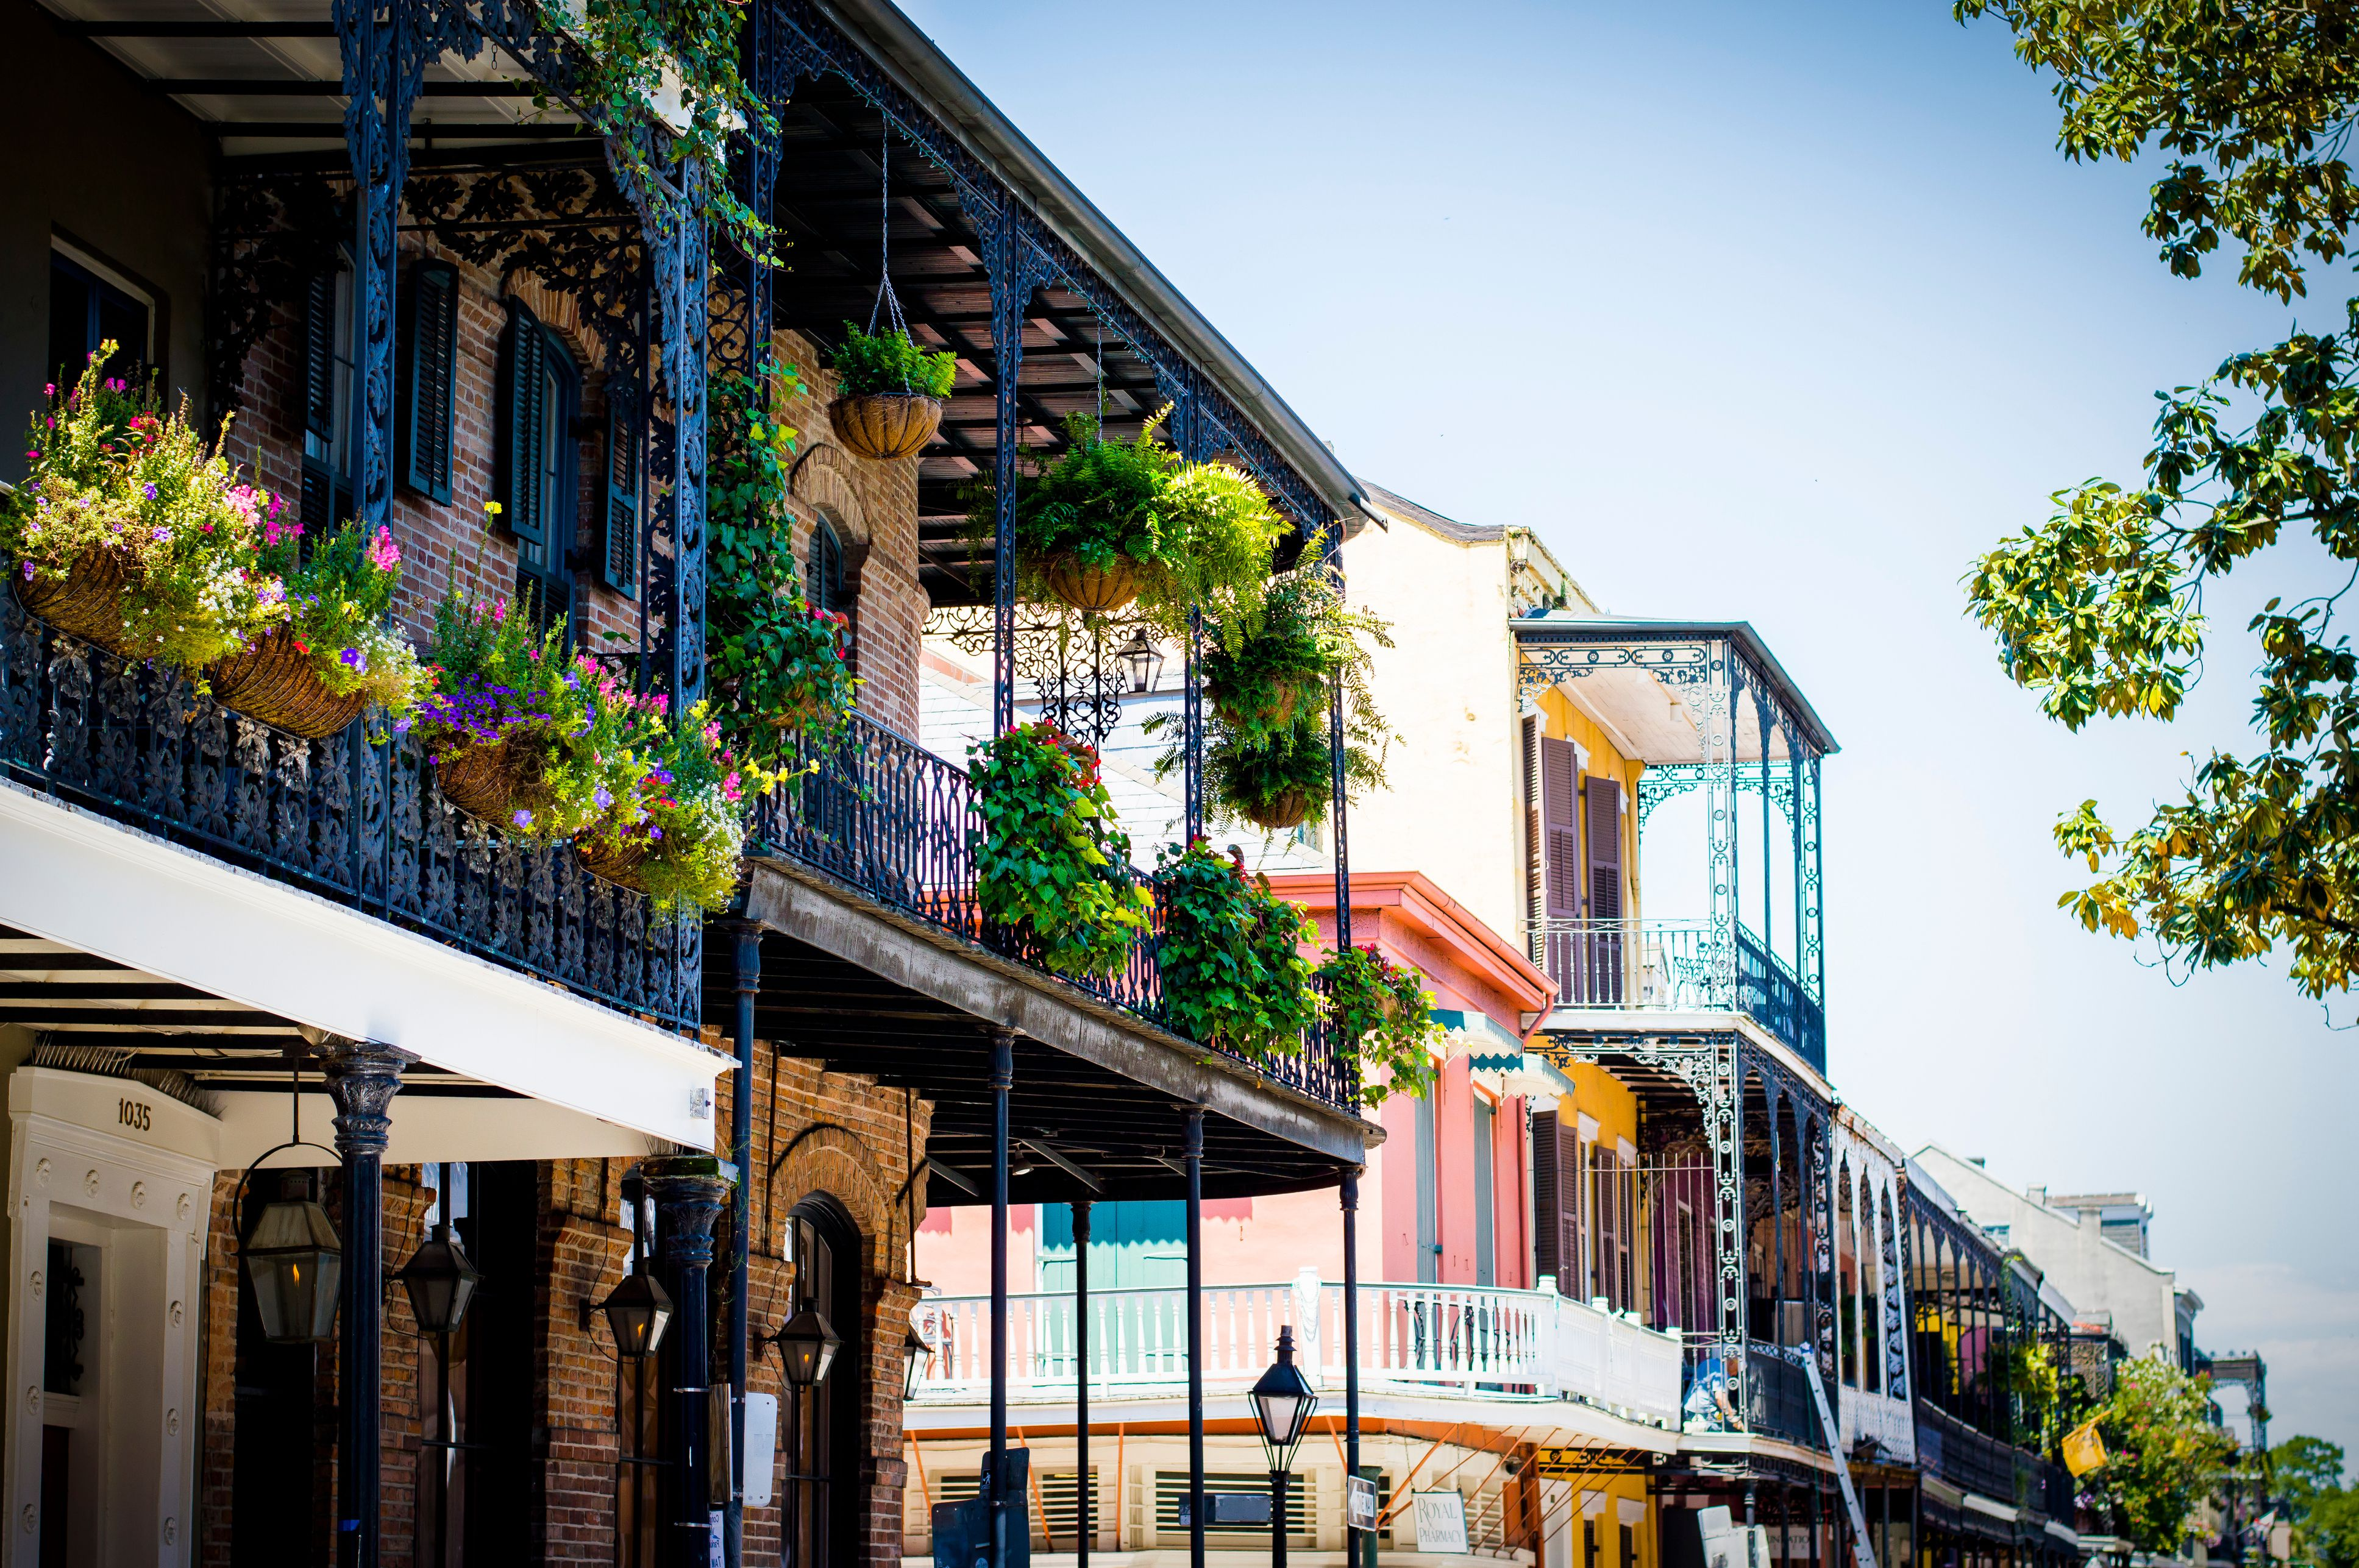 French Quarter Potted-plants-in-balcony-of-building-at-french-quarter-629129963-5ad6af01119fa8003654e5f7